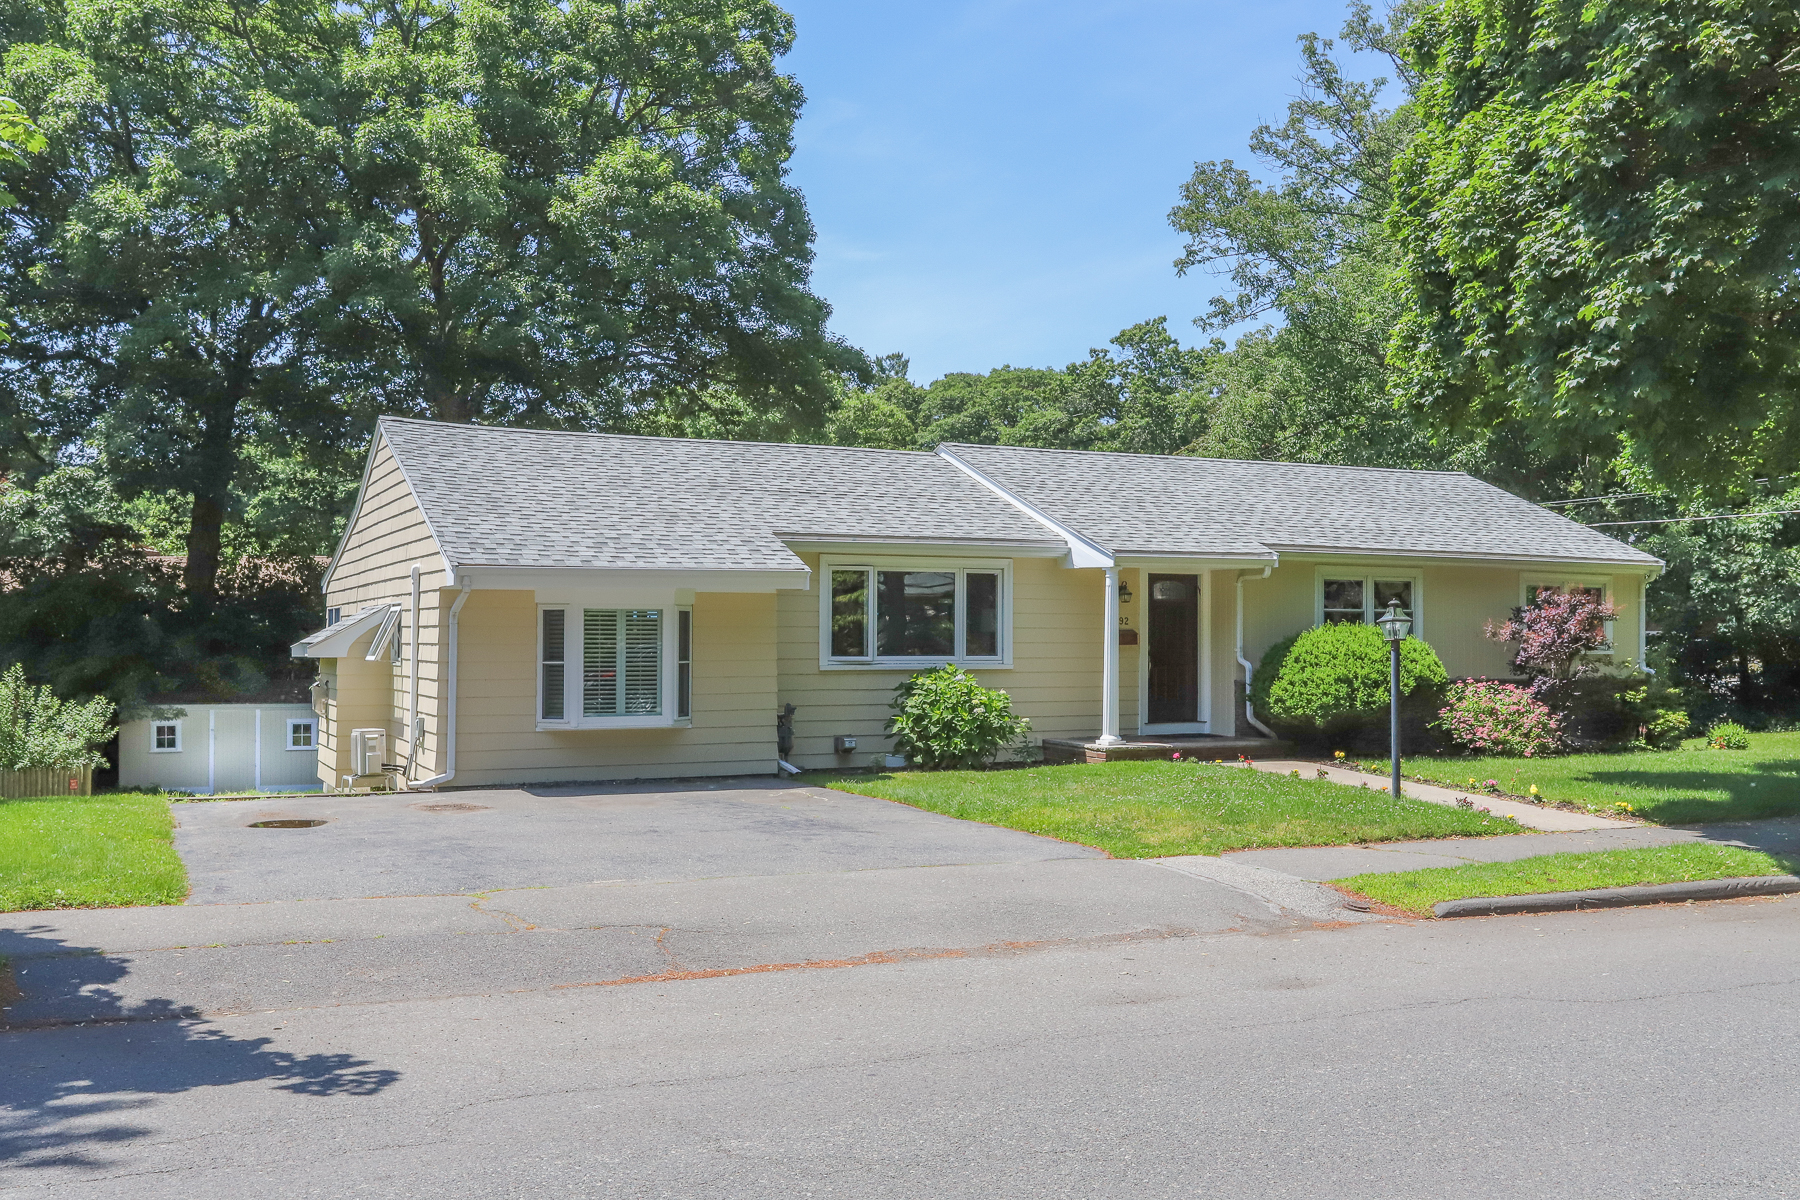 Single Family Homes for Sale at Meticulous Mid-Century Ranch 192 Forest Avenue Swampscott, Massachusetts 01907 United States